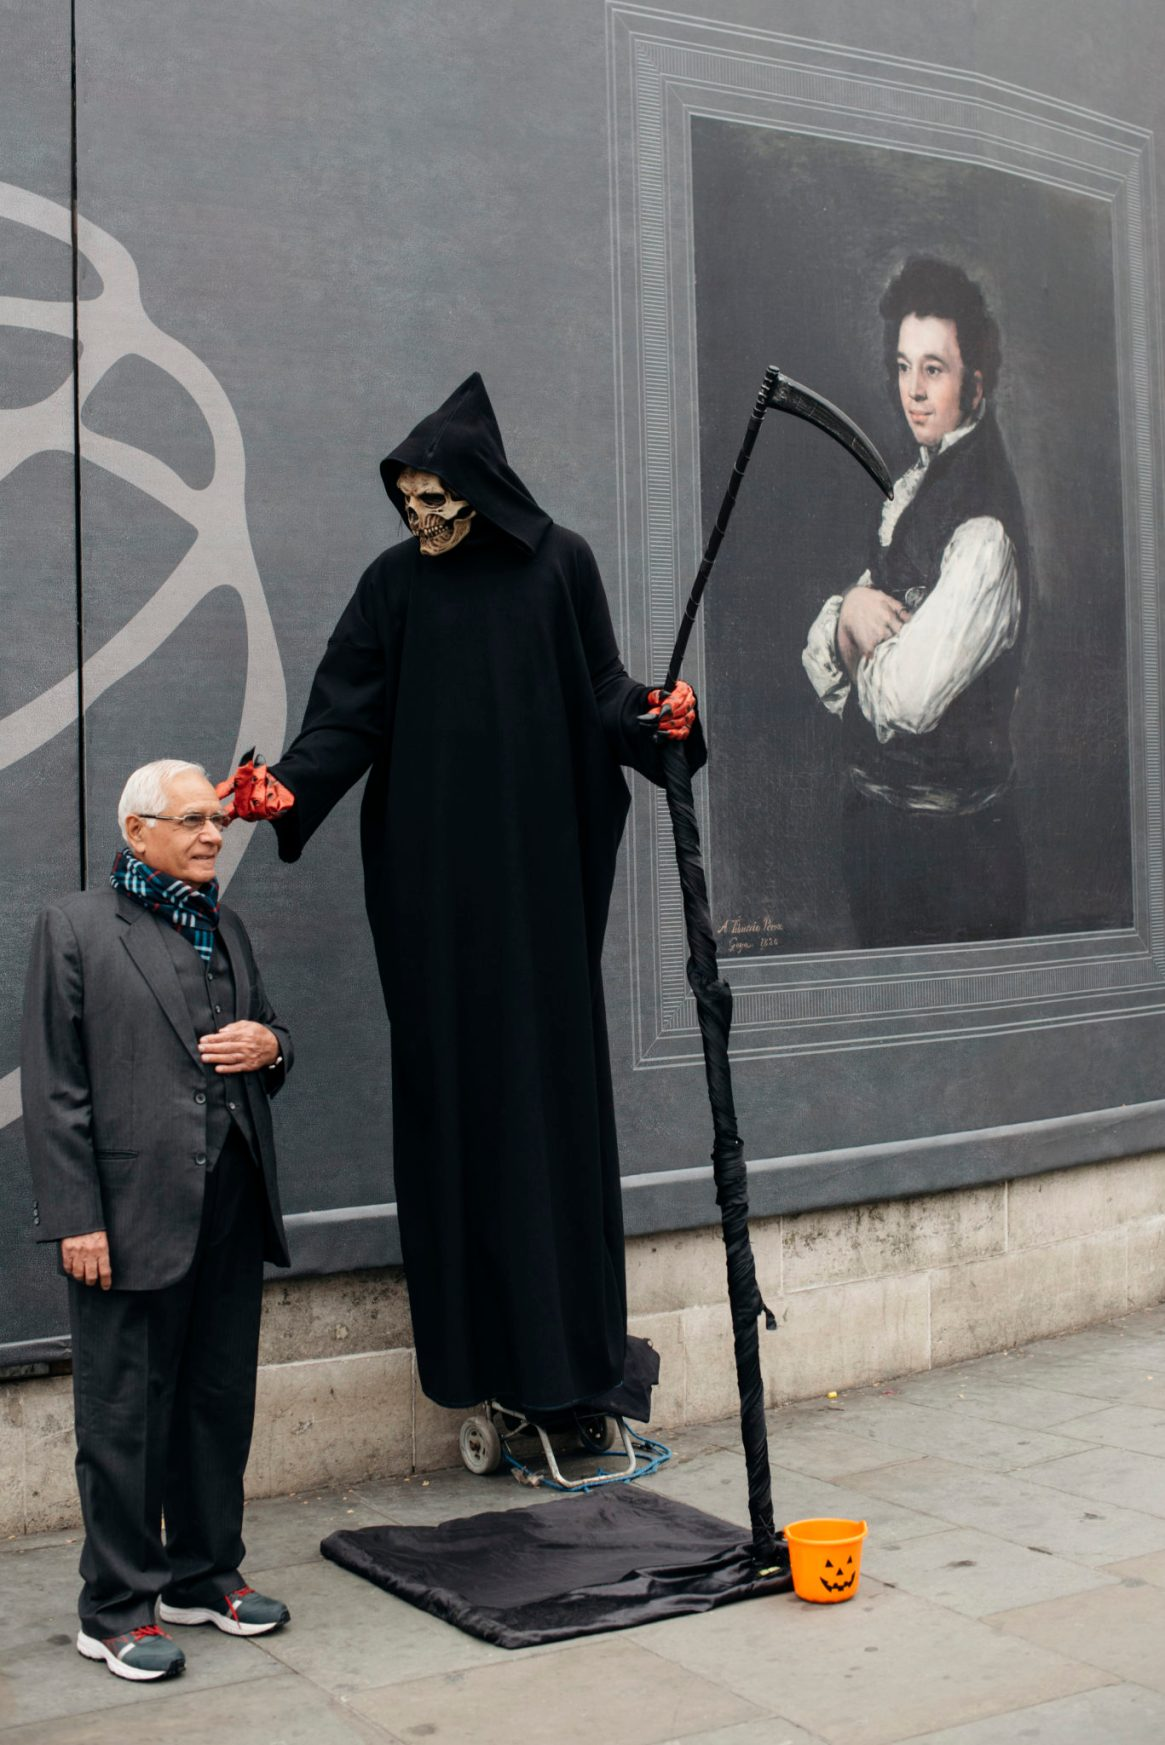 A Trafalgar Square entertainer dressed as the Grim Reaper touches a man's face as they pose in front of a wall with a poster advertising a Goya exhibition outside the National Gallery on Trafalgar Square, London